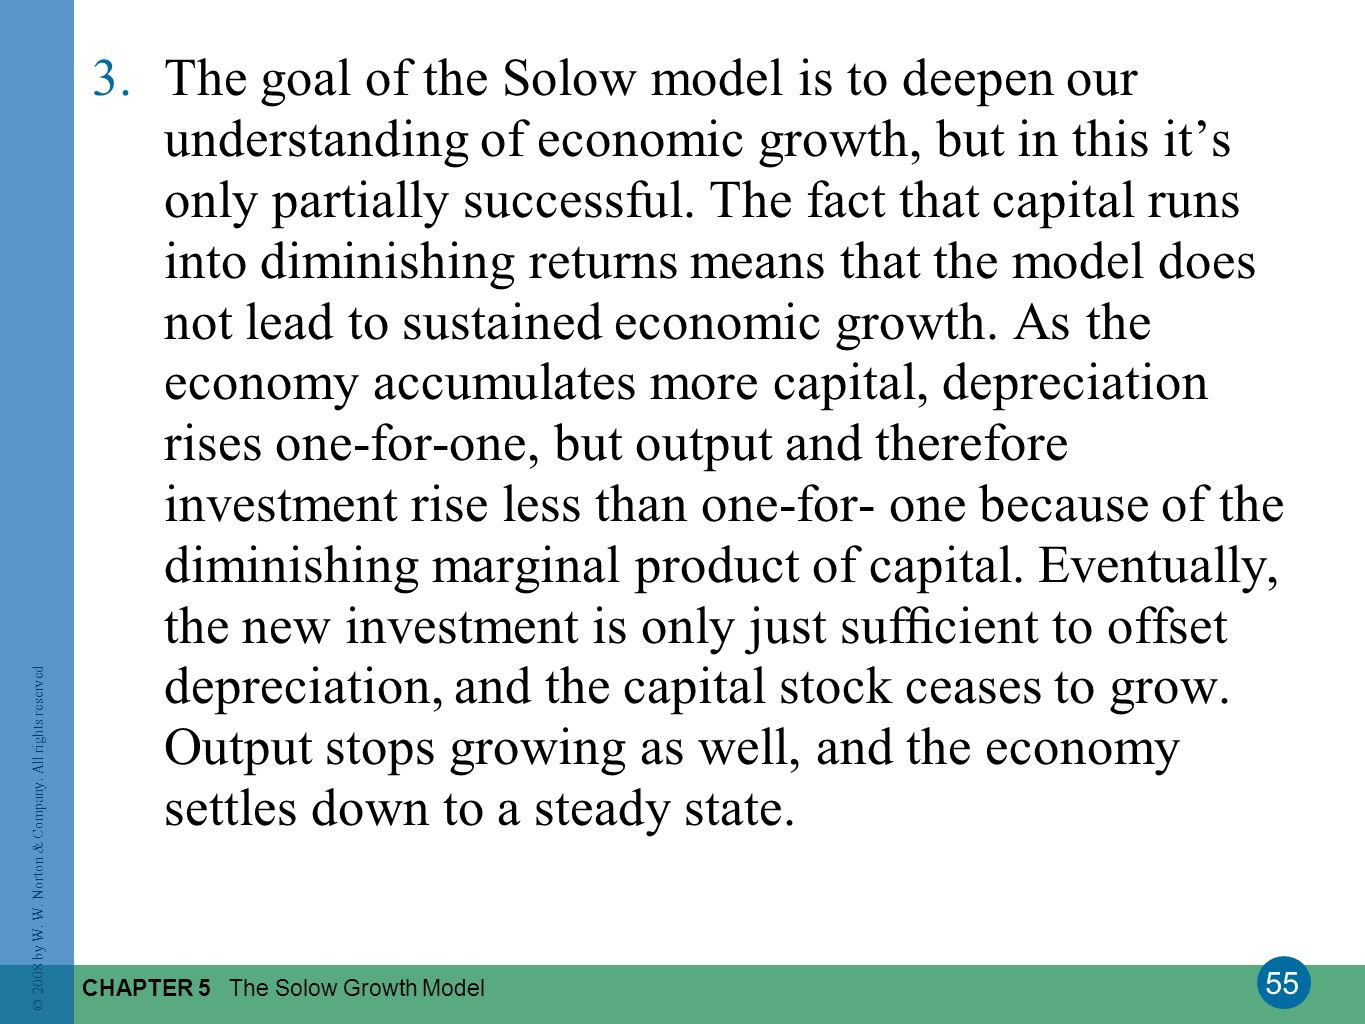 55 © 2008 by W. W. Norton & Company. All rights reserved CHAPTER 5 The Solow Growth Model 3.The goal of the Solow model is to deepen our understanding